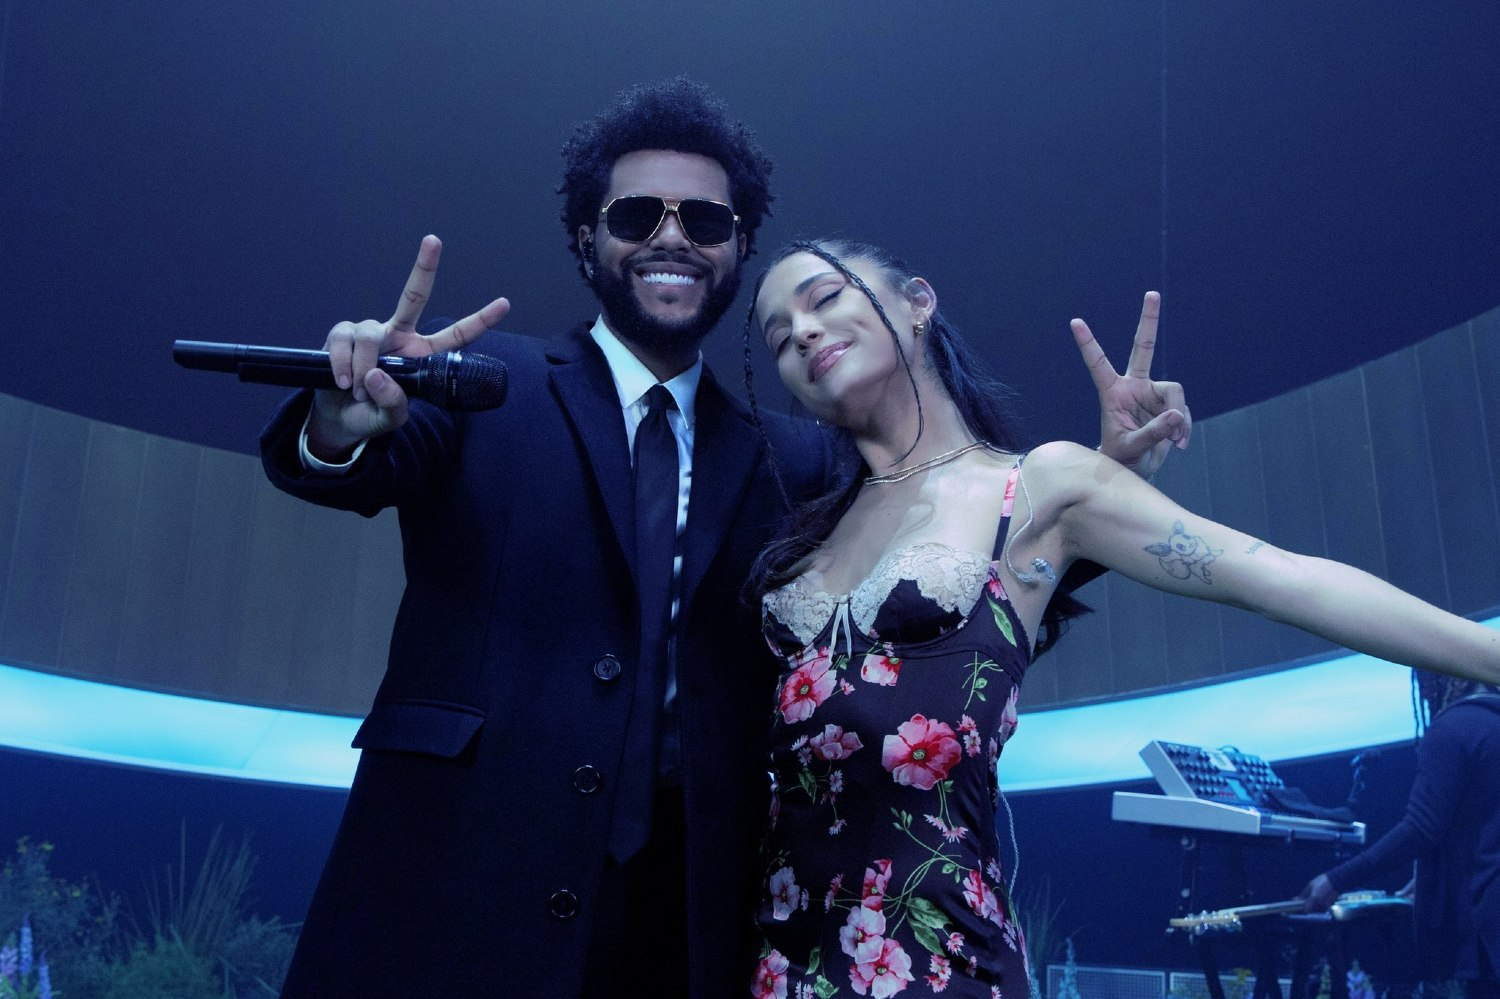 Ariana Grande The Weeknd Off The Table Official Live Performance Vevo 1874837